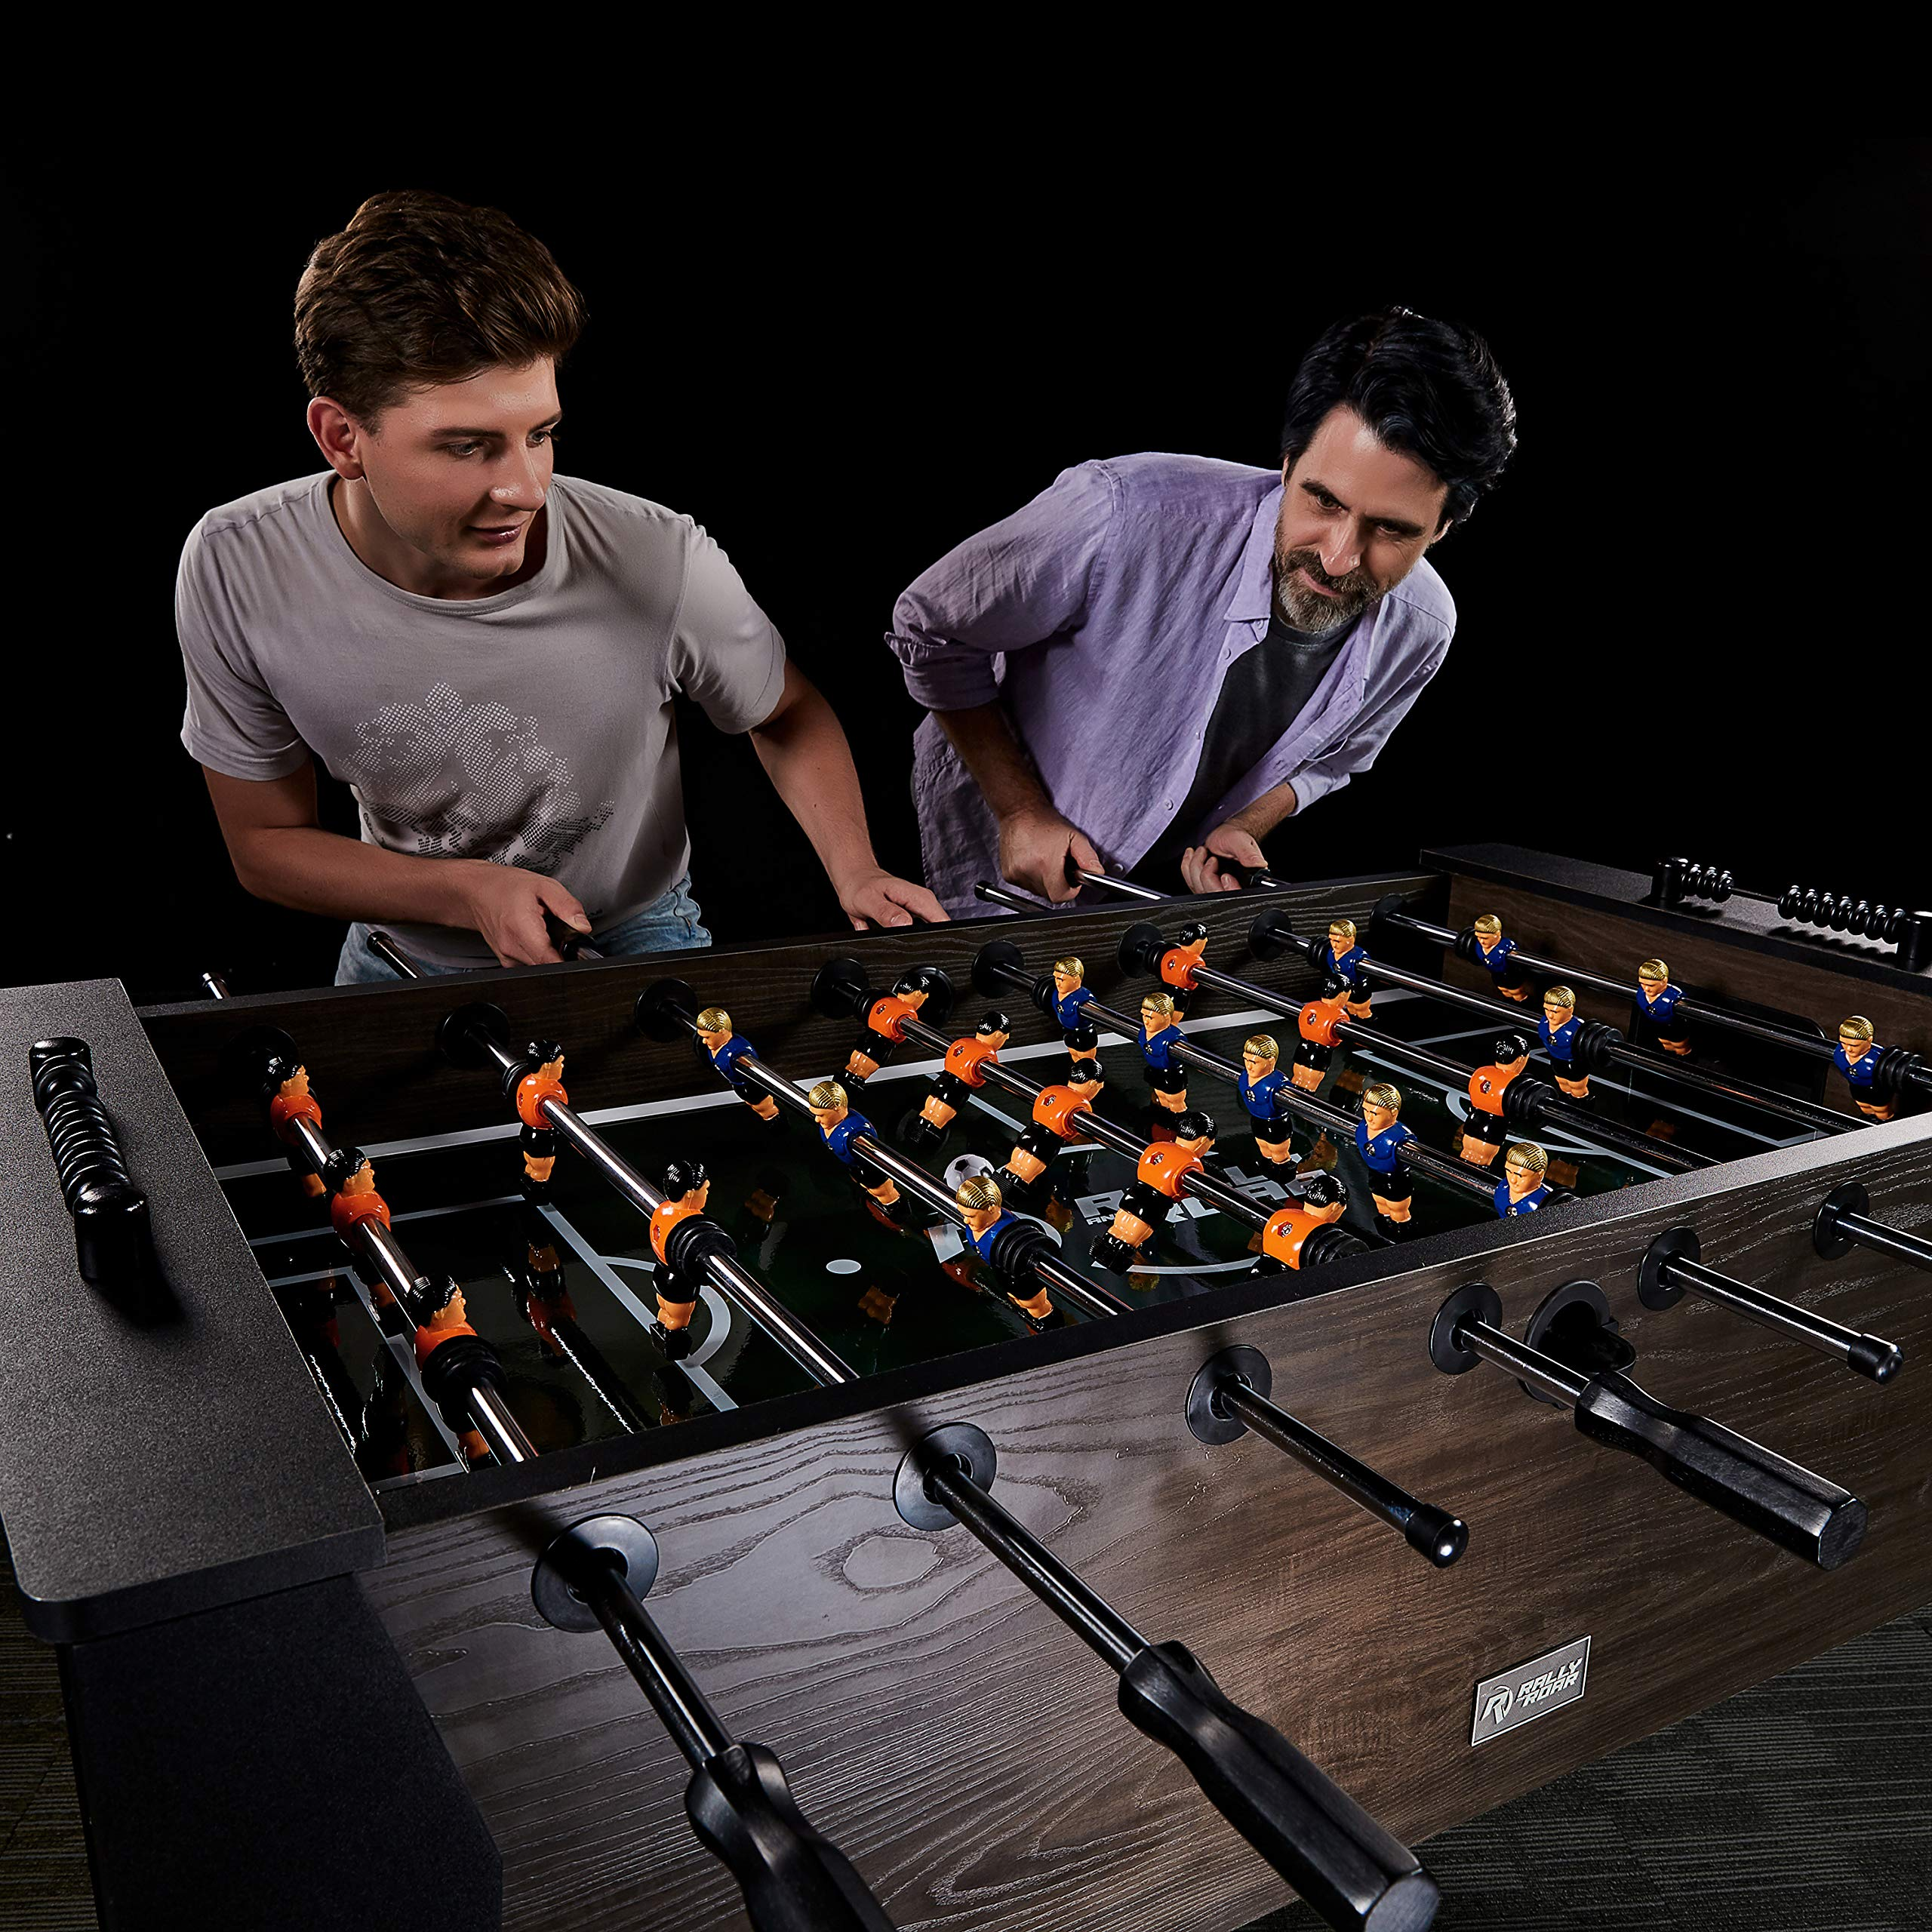 """Rally and Roar Foosball Table Game – 56"""" Standard Size Fun, Multi Person Table Soccer Adults, Kids - Recreational Foosball Games Game Rooms, Arcades, Bars, Parties, Family Night by Rally and Roar (Image #11)"""